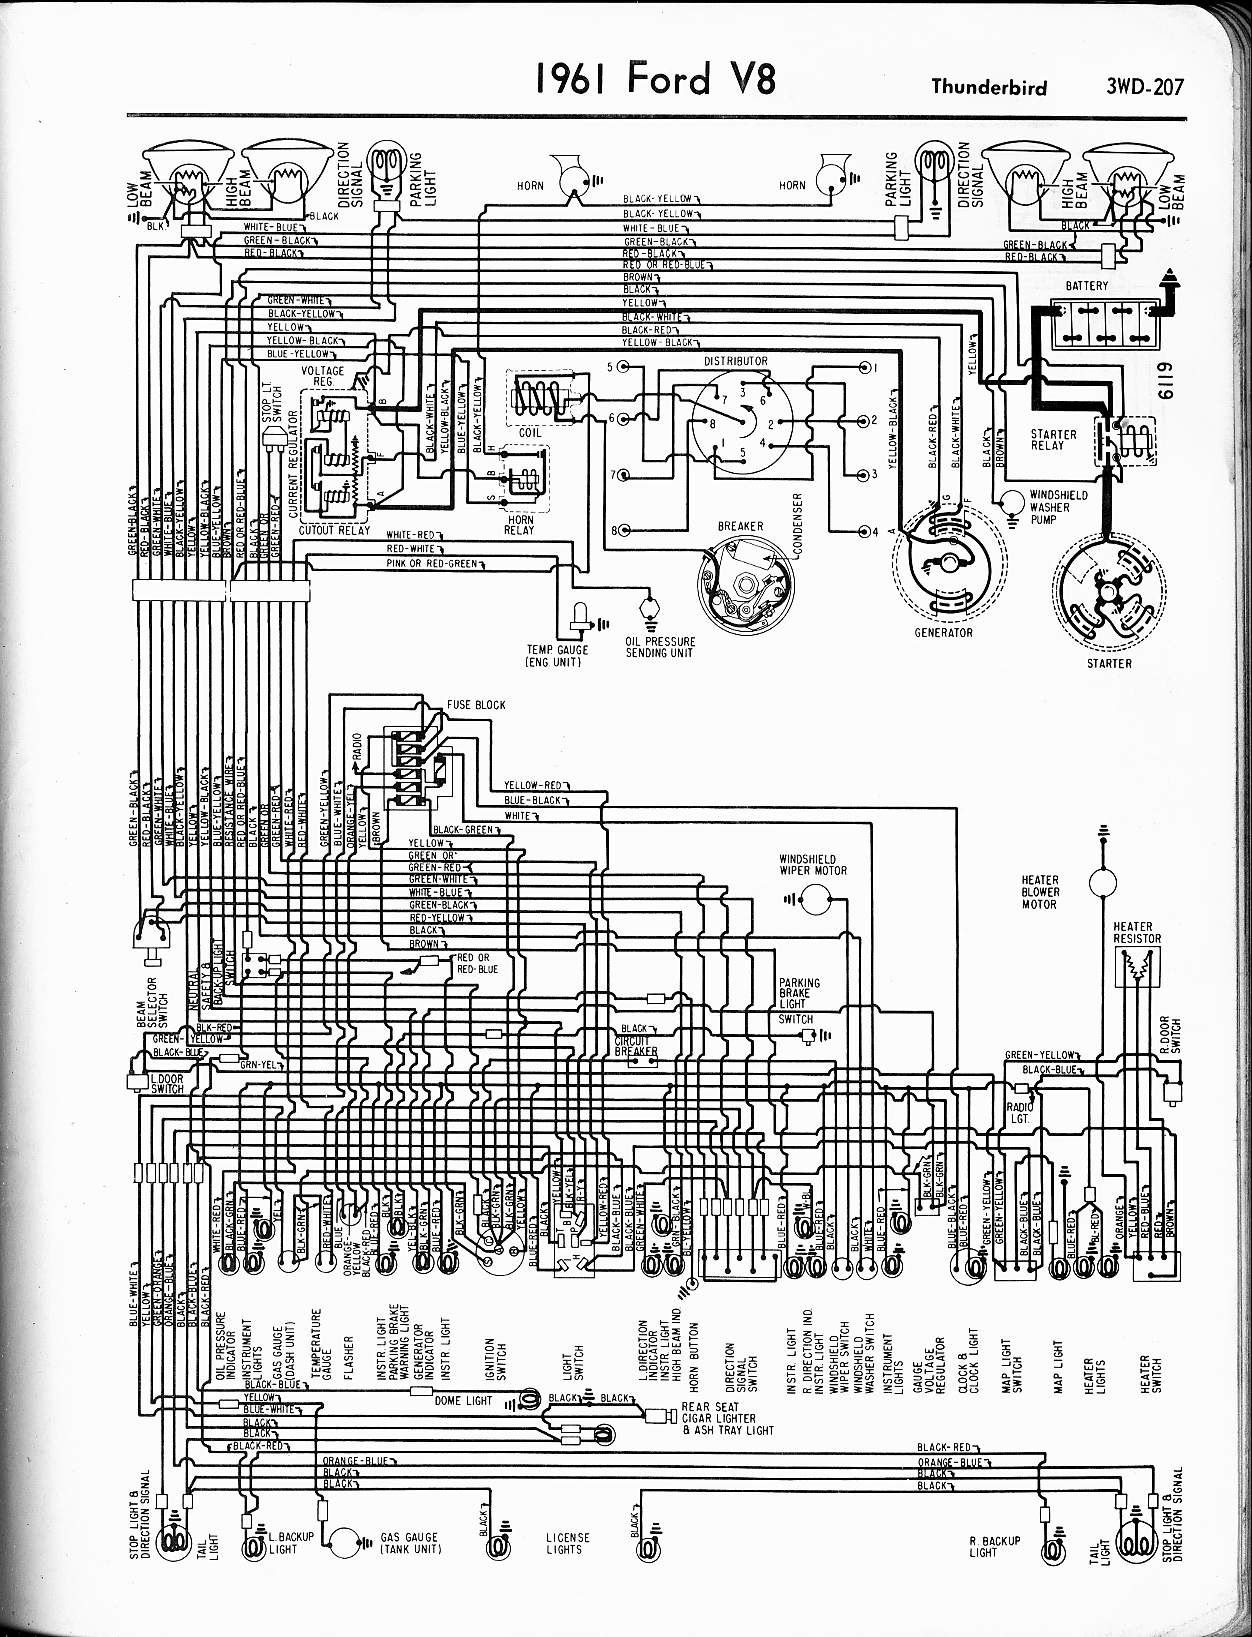 MWire5765 207 57 65 ford wiring diagrams ford wiring harness diagrams at edmiracle.co